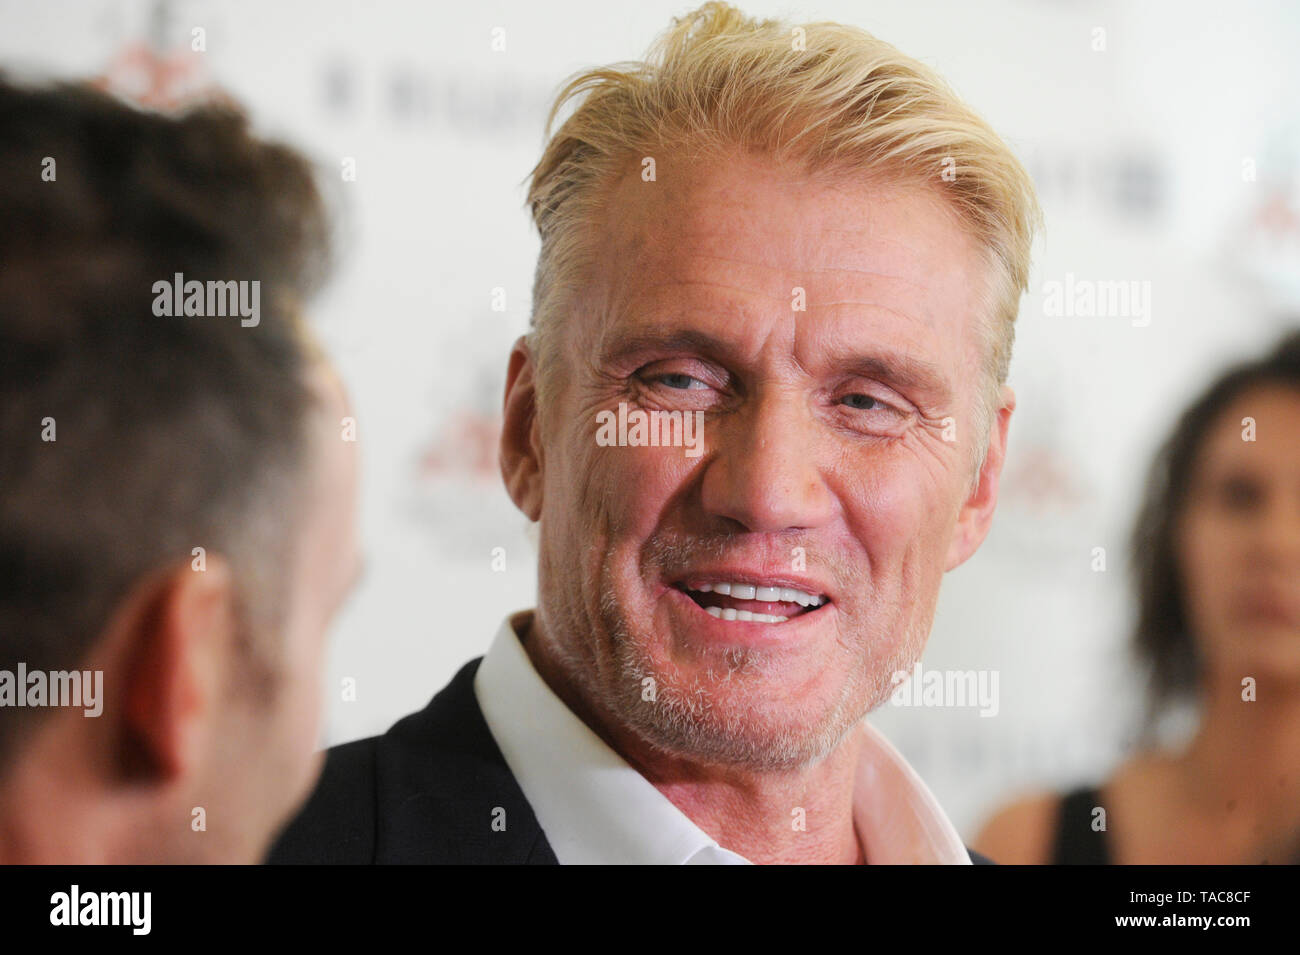 Beverly Hills, USA. 22nd May, 2019. Dolph Lundgren attends Sugar Ray Leonard Foundation's 10th Annual 'Big Fighters, Big Cause' Charity Boxing Night at The Beverly Hilton Hotel on May 22, 2019 in Beverly Hills, California. Credit: The Photo Access/Alamy Live News - Stock Image